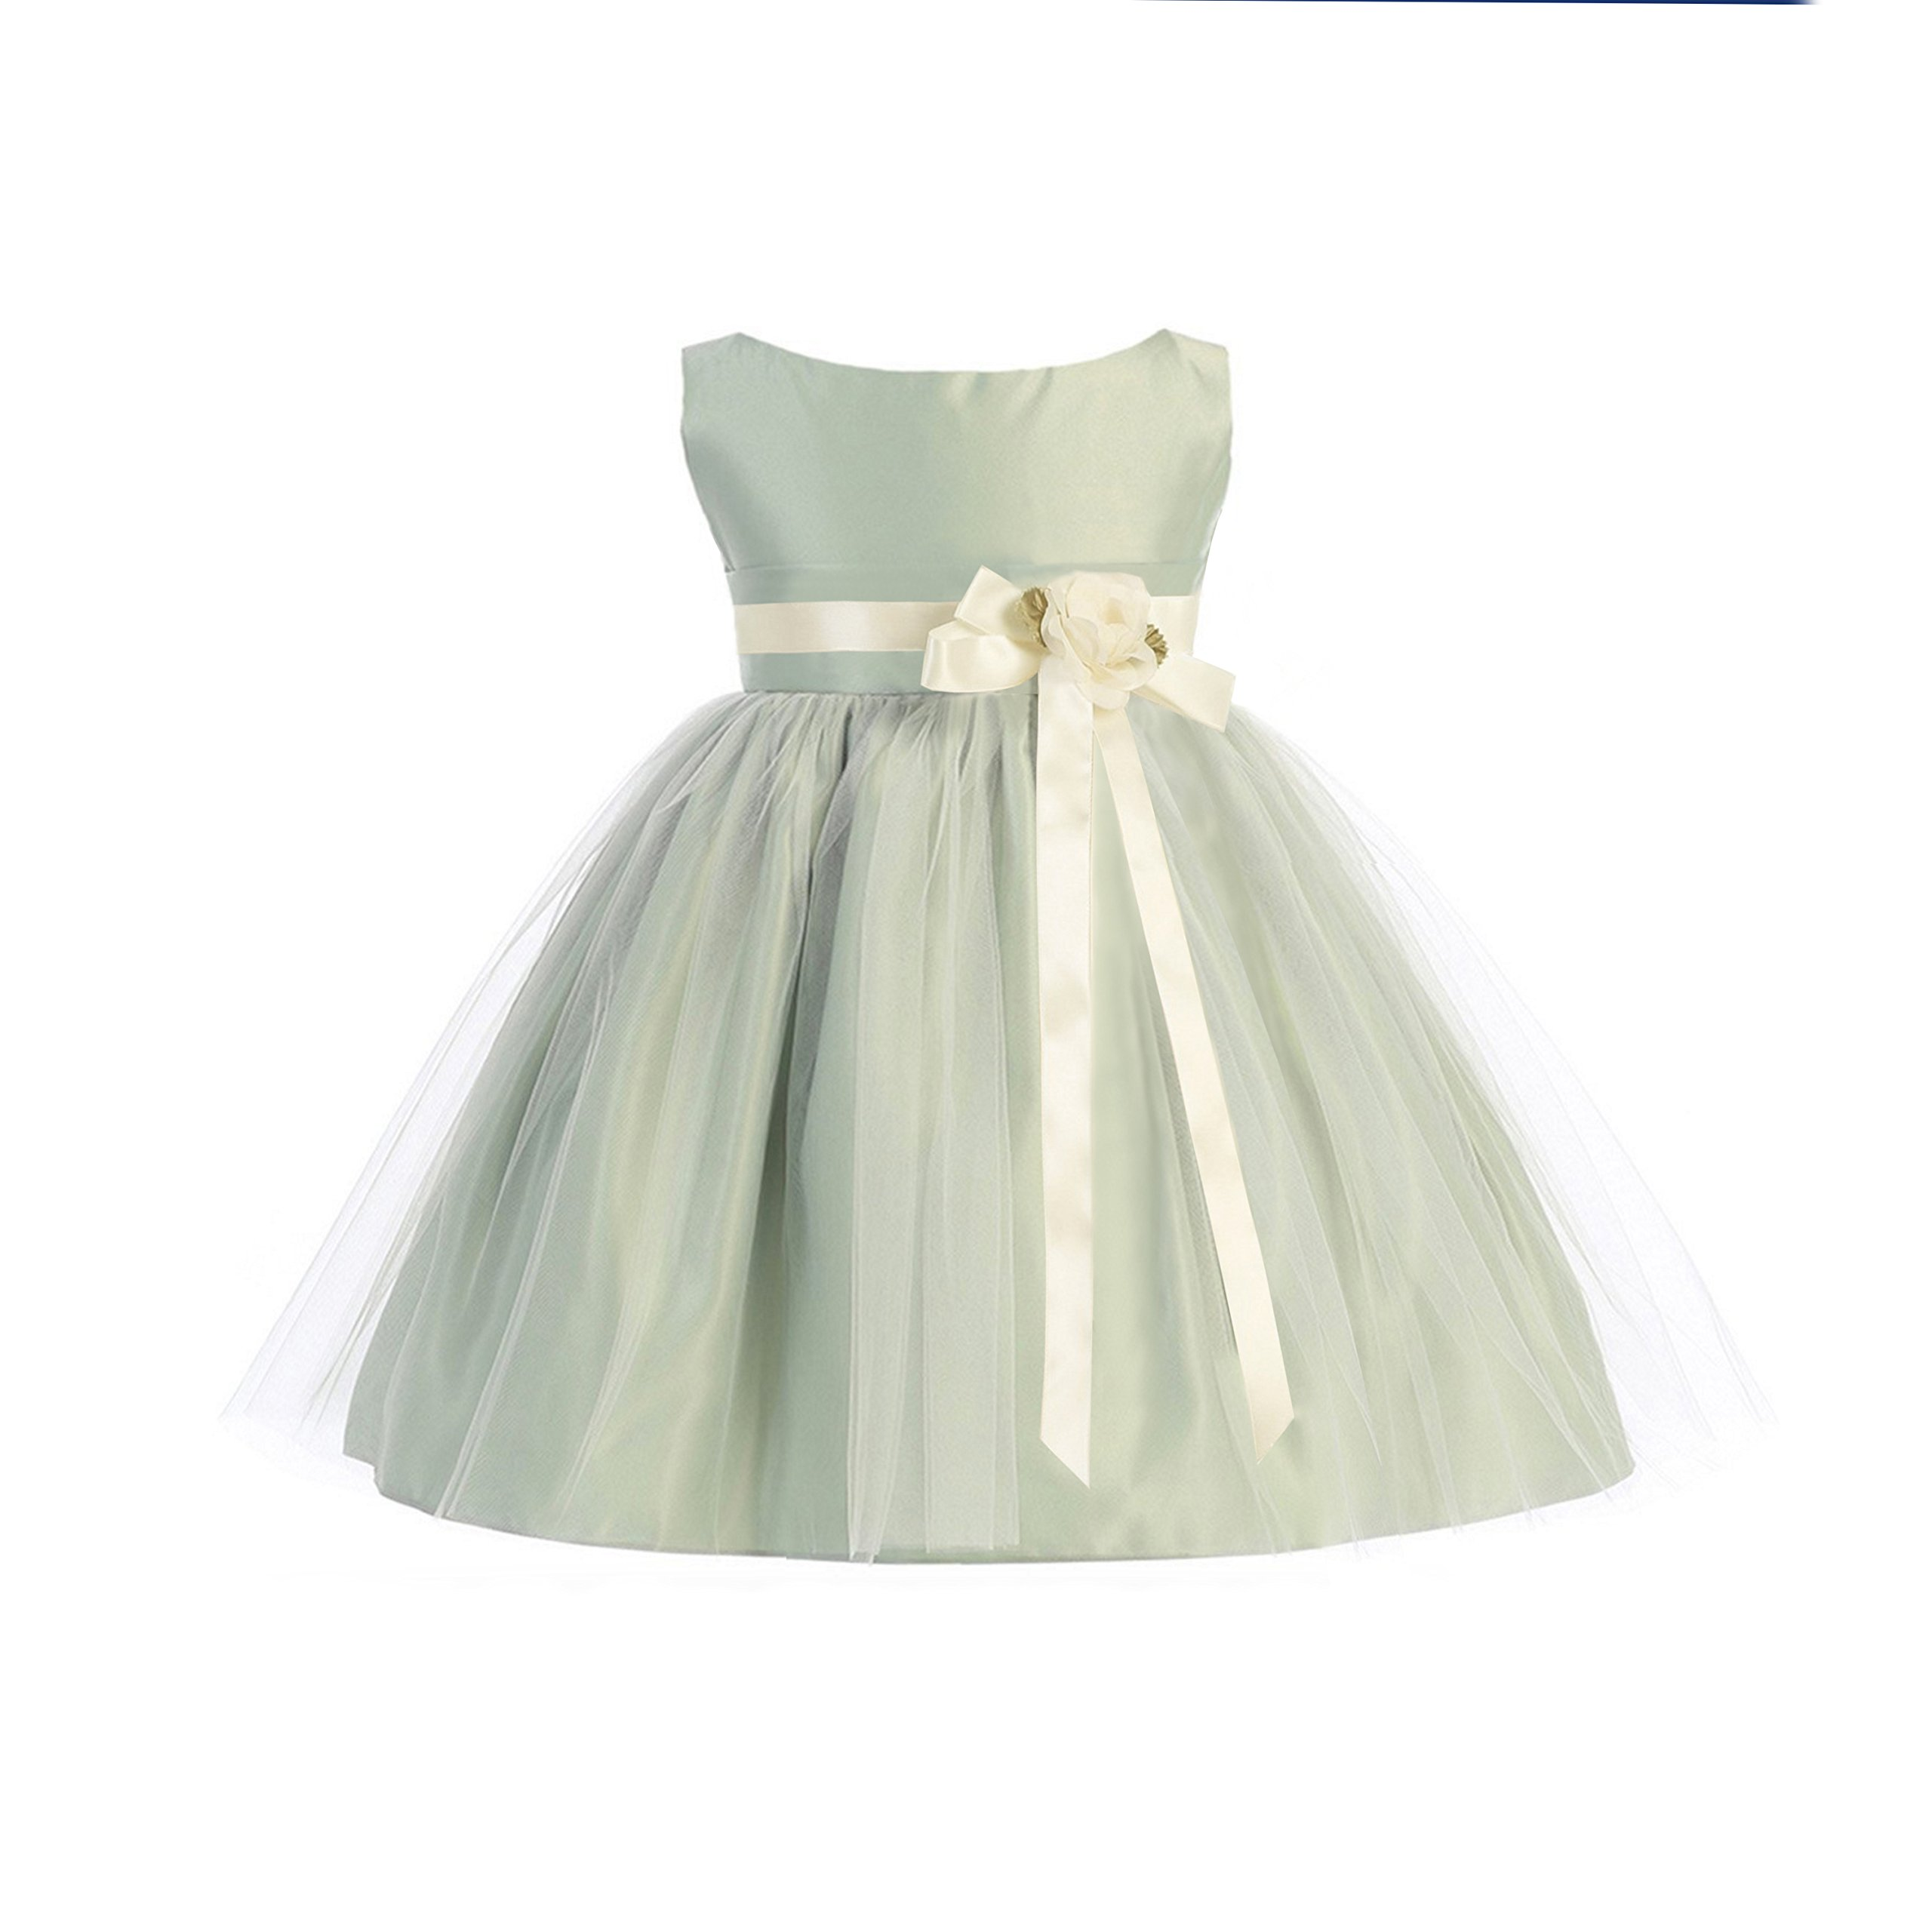 89aeab91cd Galleon - Sweet Kids Girls Vintage Satin Tulle Special Occasion Flower-  Medium   6-12 Months - Sage